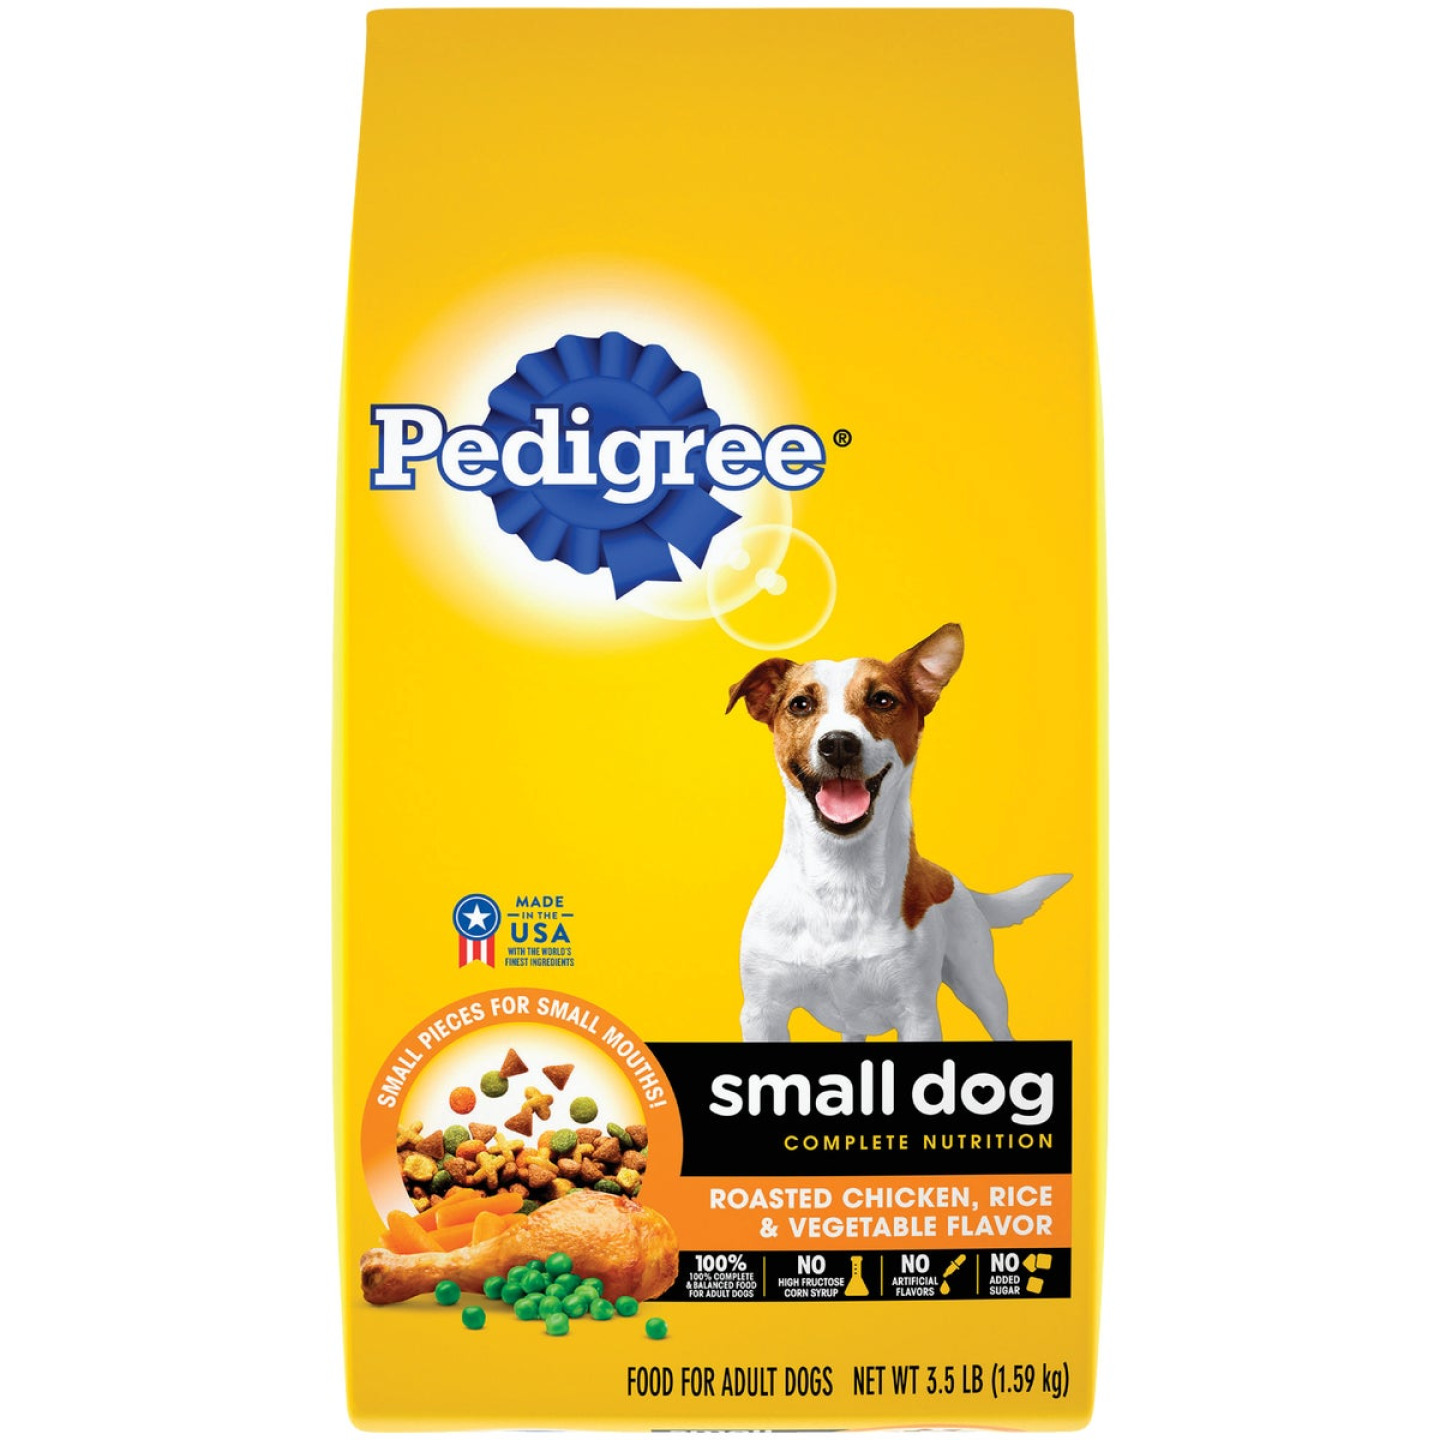 Pedigree Small Dog Complete Nutrition 3.5 Lb. Roasted Chicken, Rice & Vegetable Adult Dry Dog Food Image 1